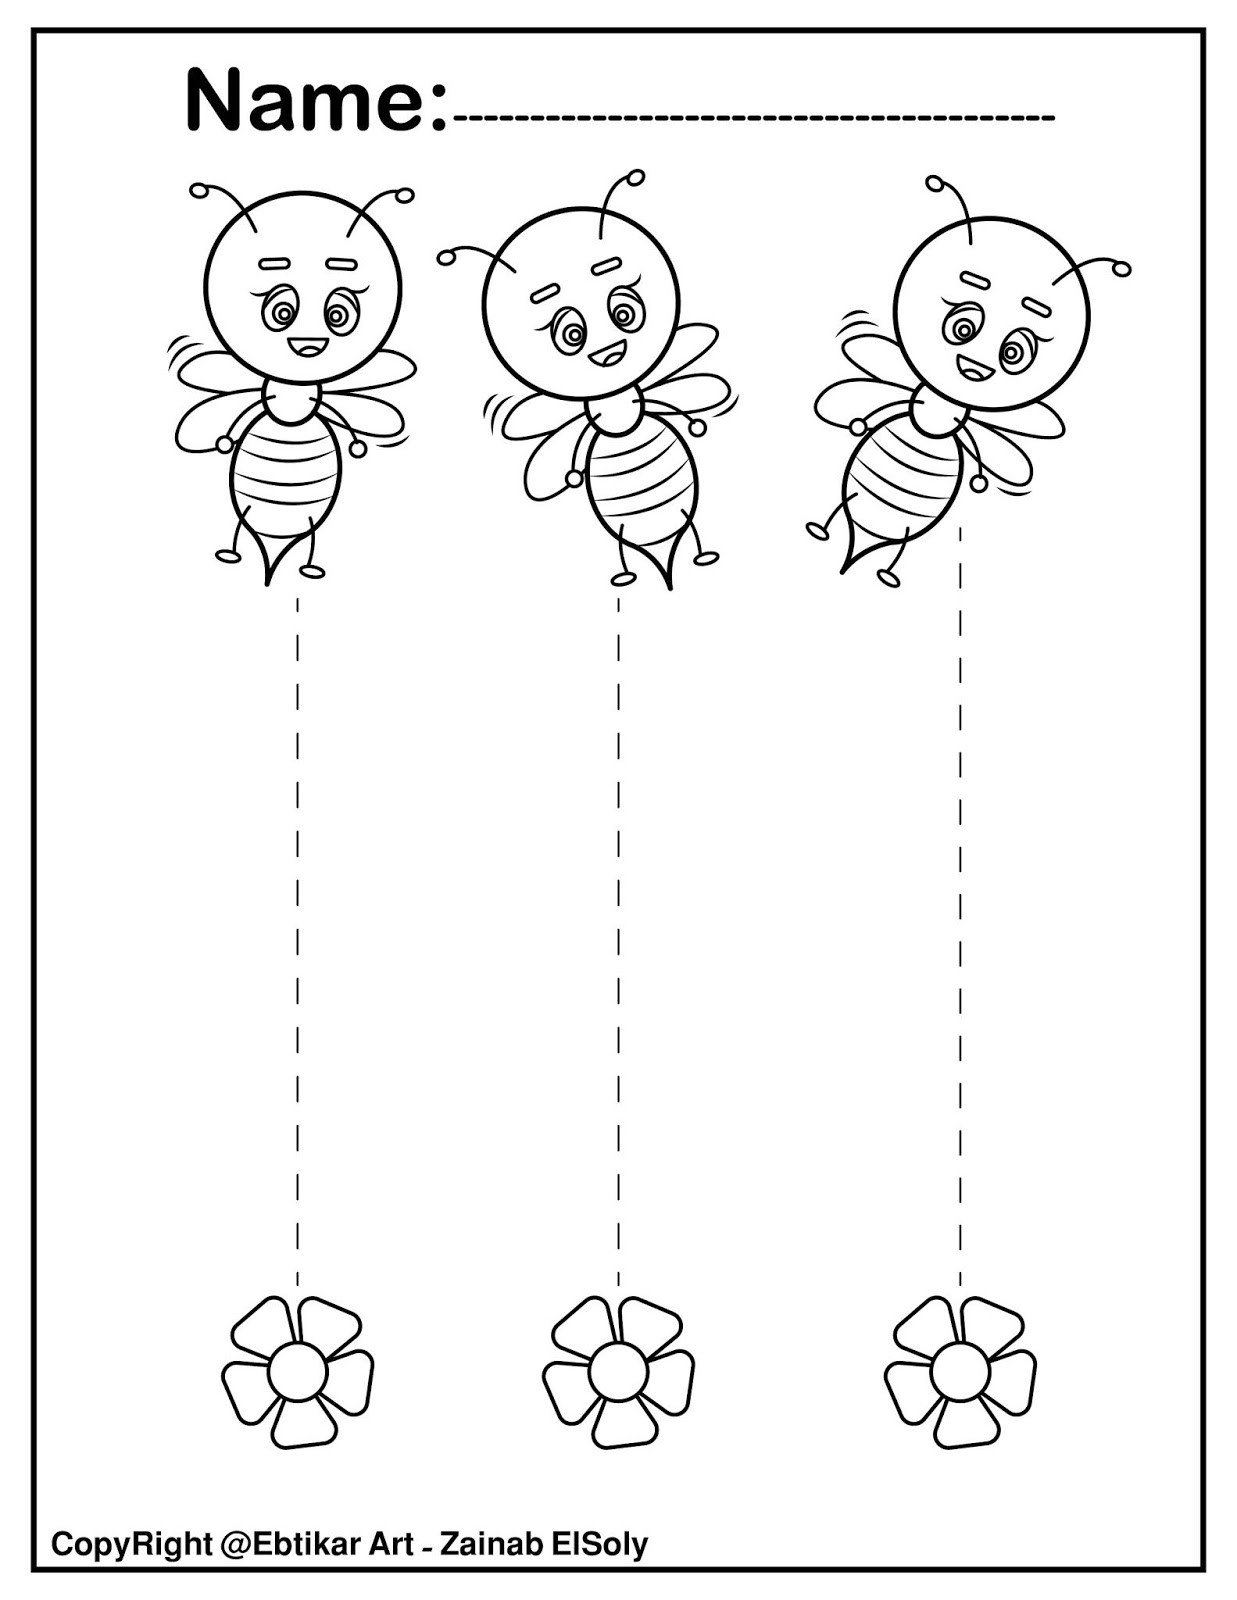 Free Printable Cutting Worksheets Straight Line Tracing Preschool Cutting Worksheets Activites